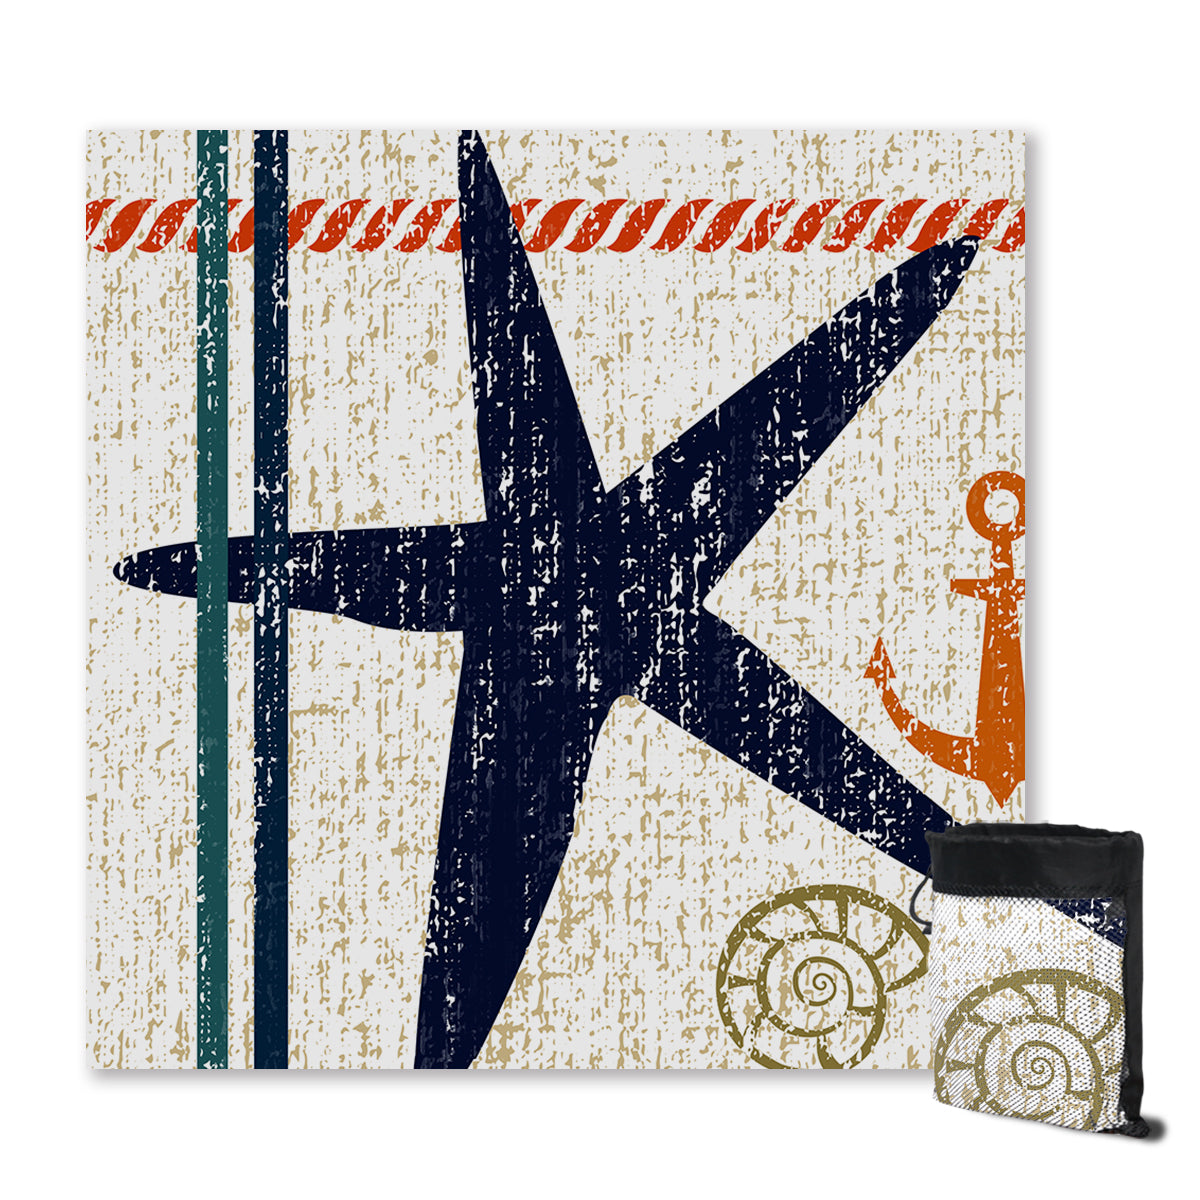 Beachy Starfish Sand Free Towel